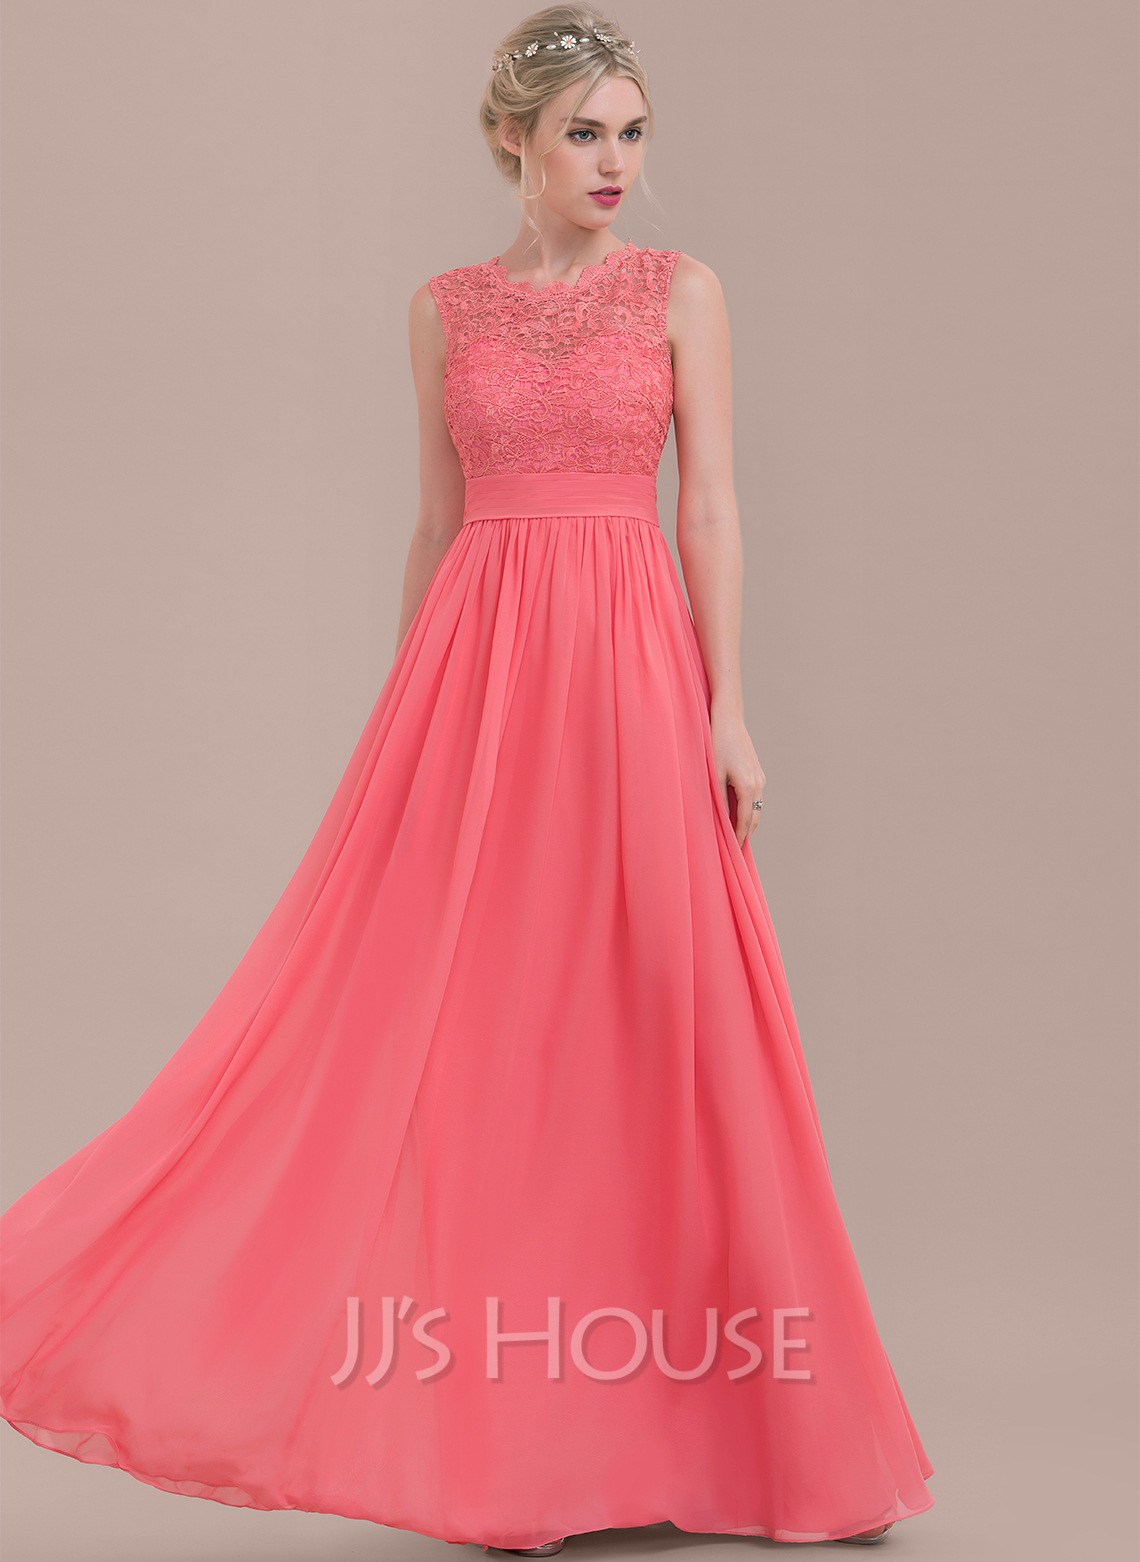 A Line Princess Scoop Neck Floor Length Chiffon Lace Bridesmaid Dress With Ruffle Loading Zoom